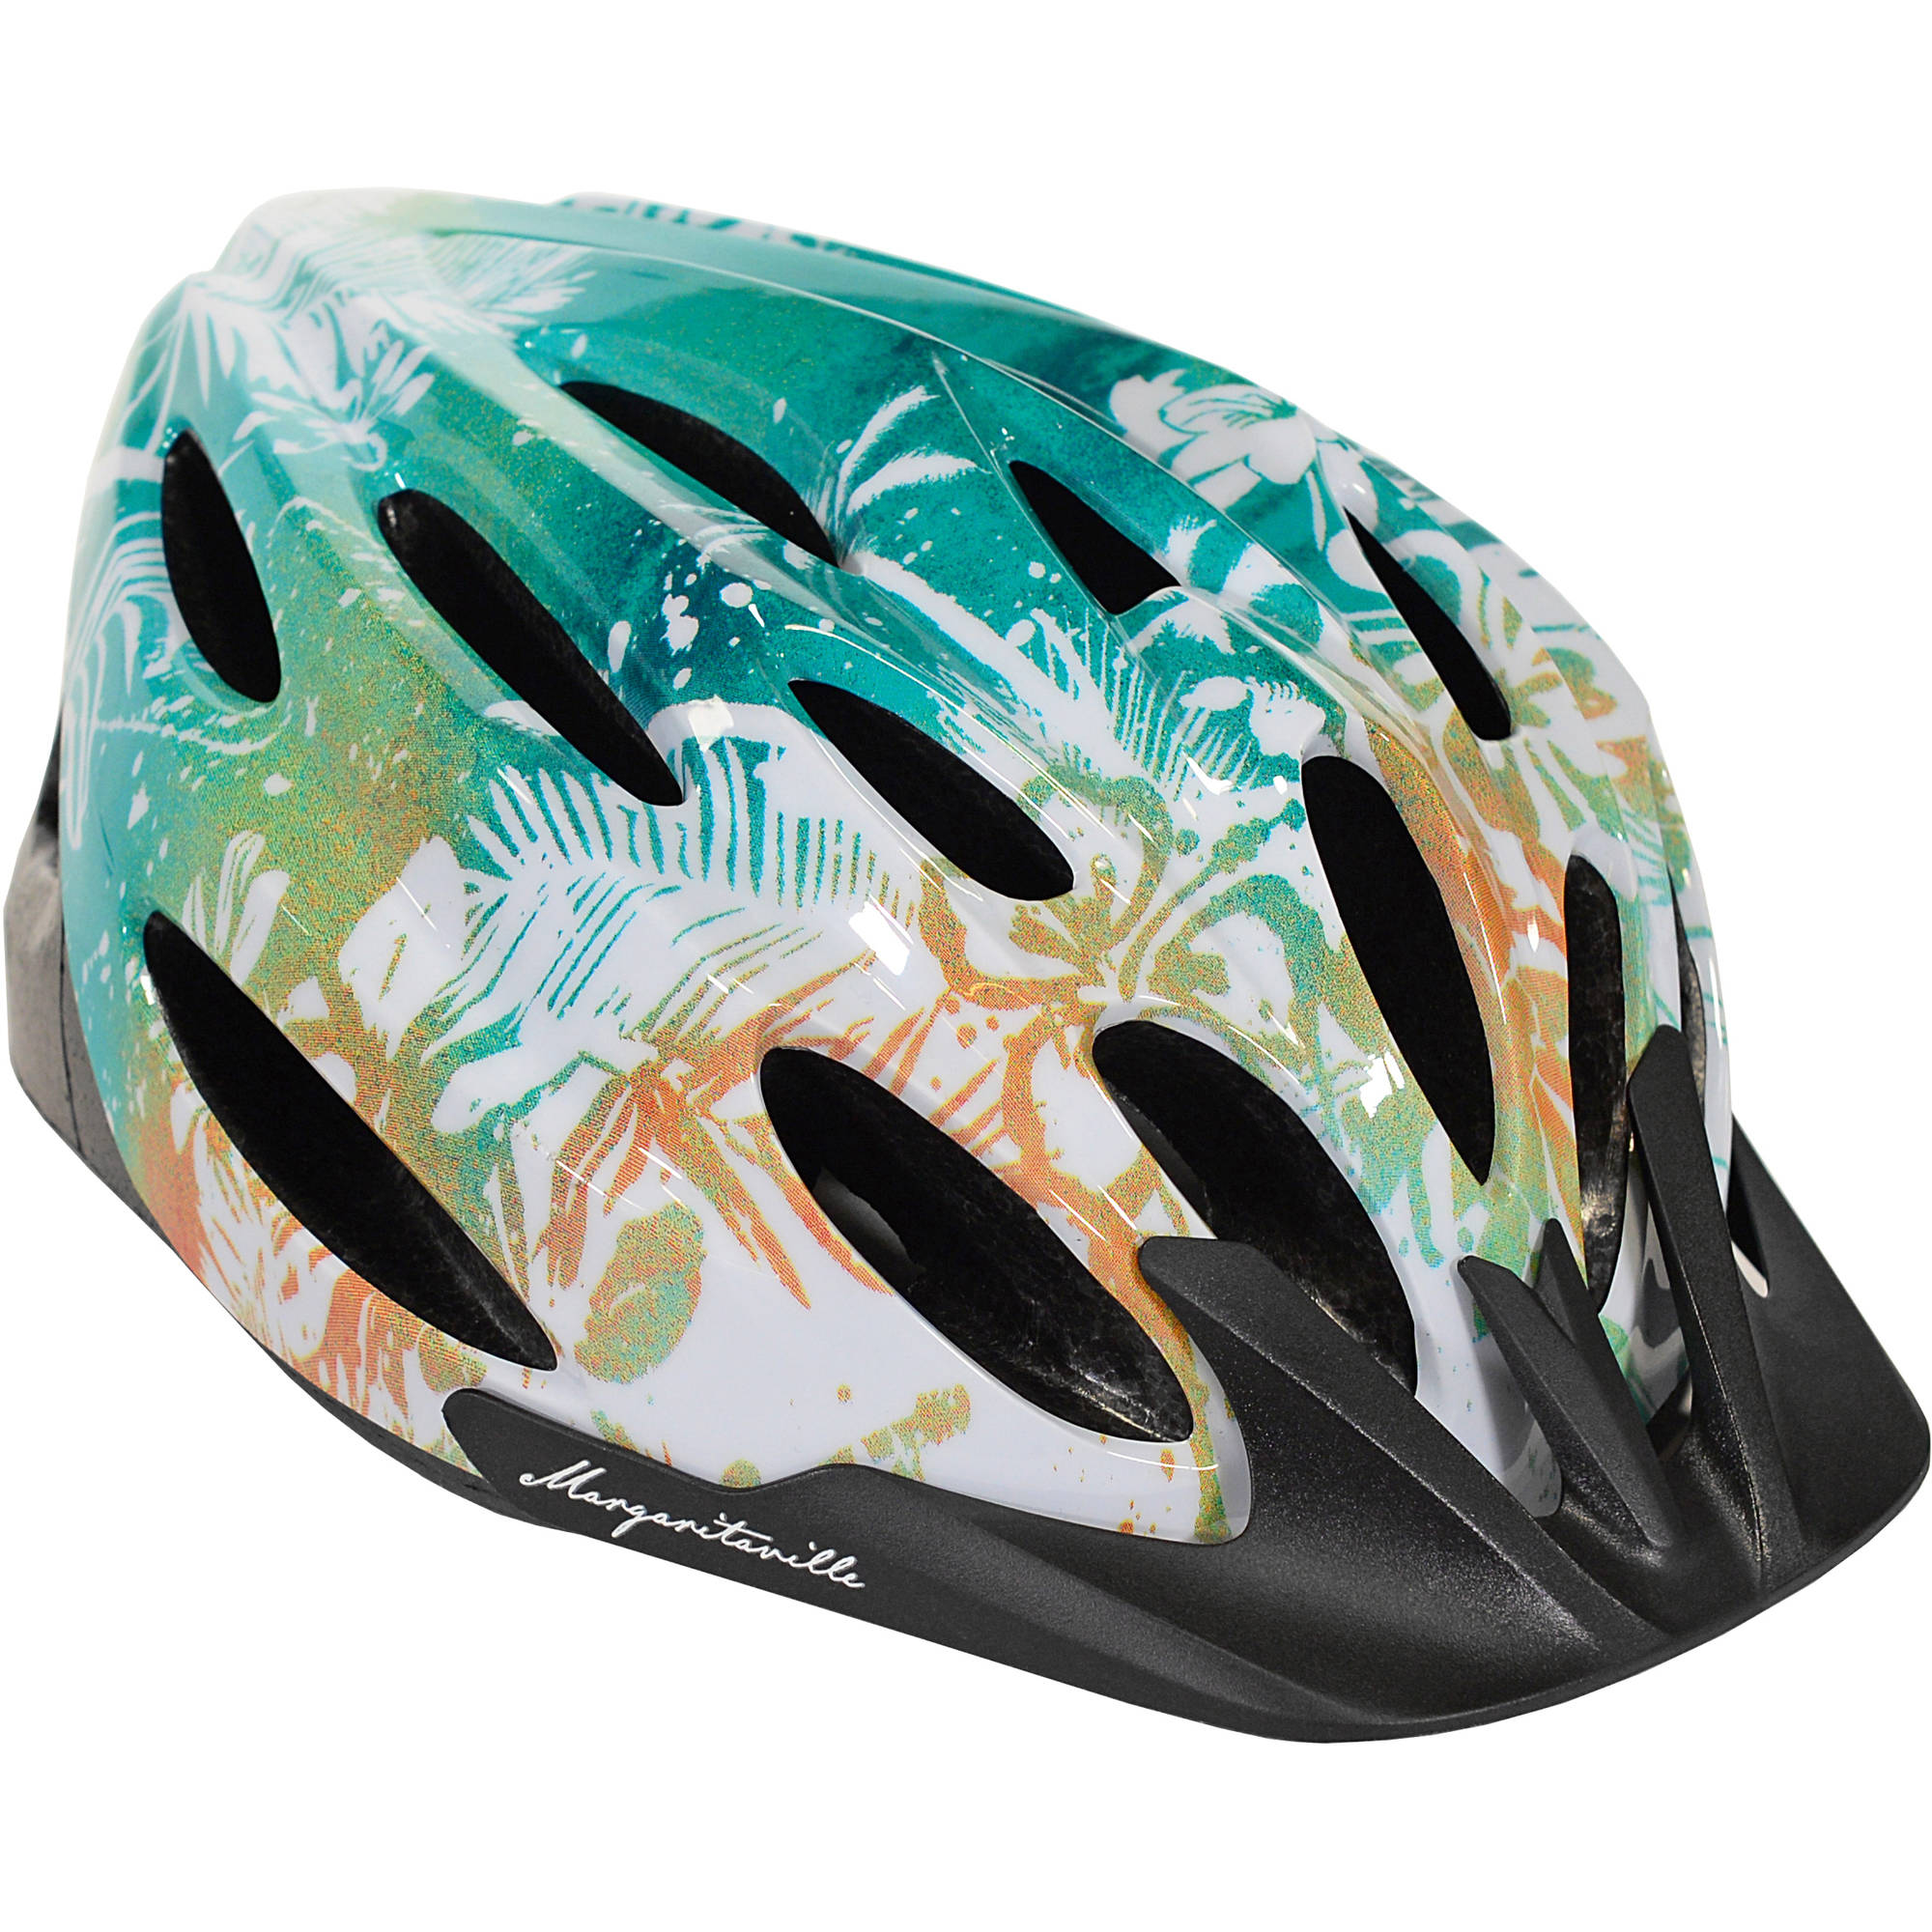 Margaritaville Adult, Multi-Sport Helmet, Multi-Color